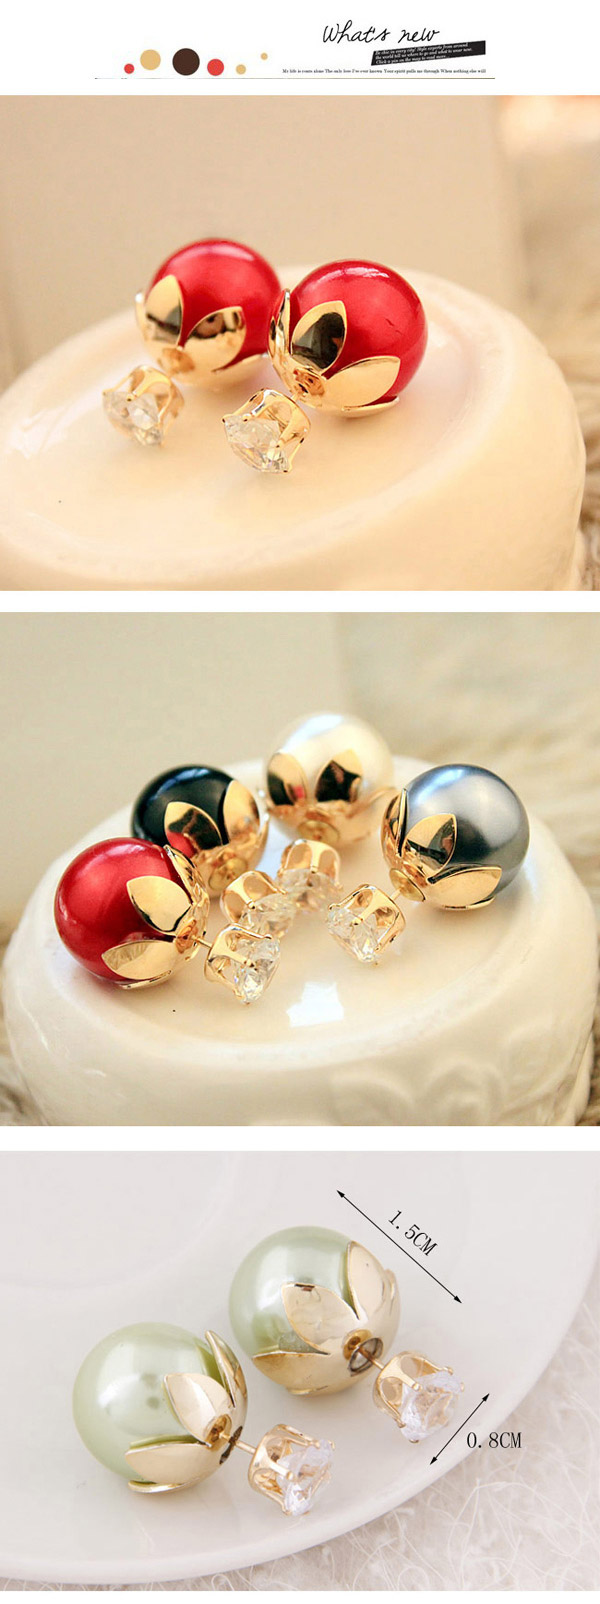 Anting Tusuk T6C6C6